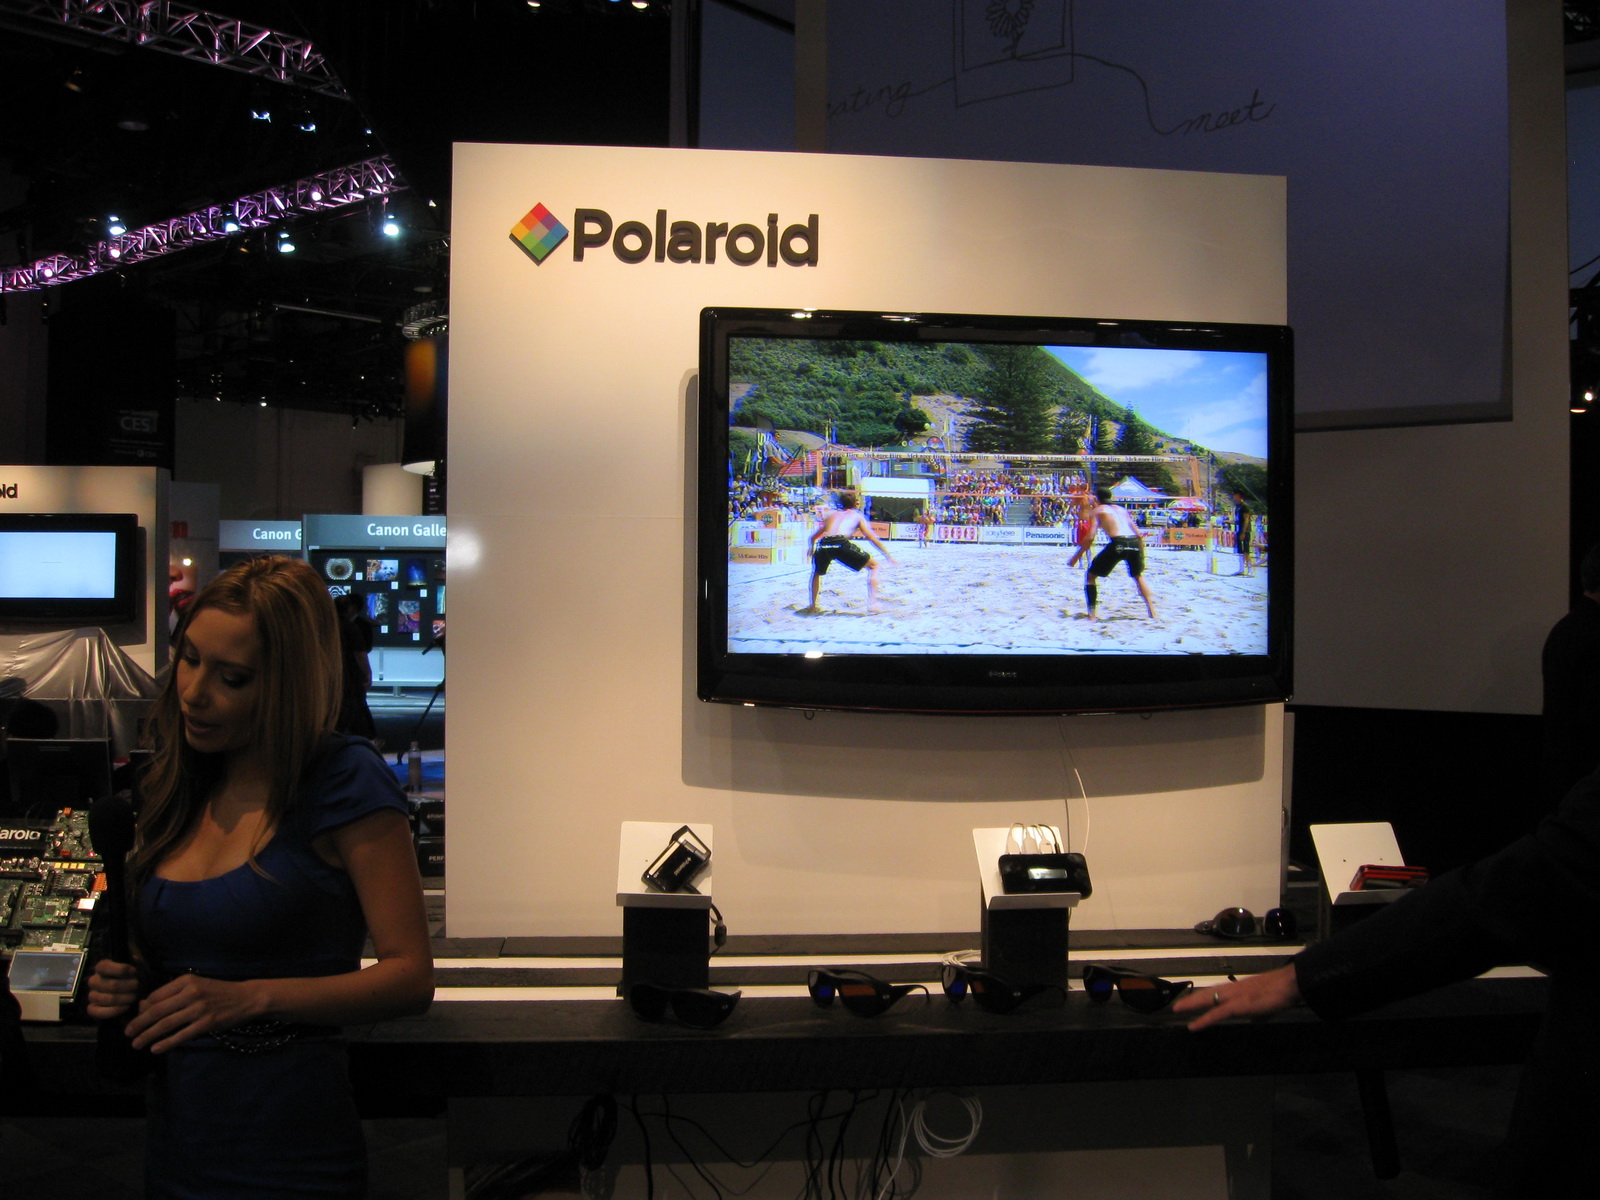 Polaroid booth at CES 2011